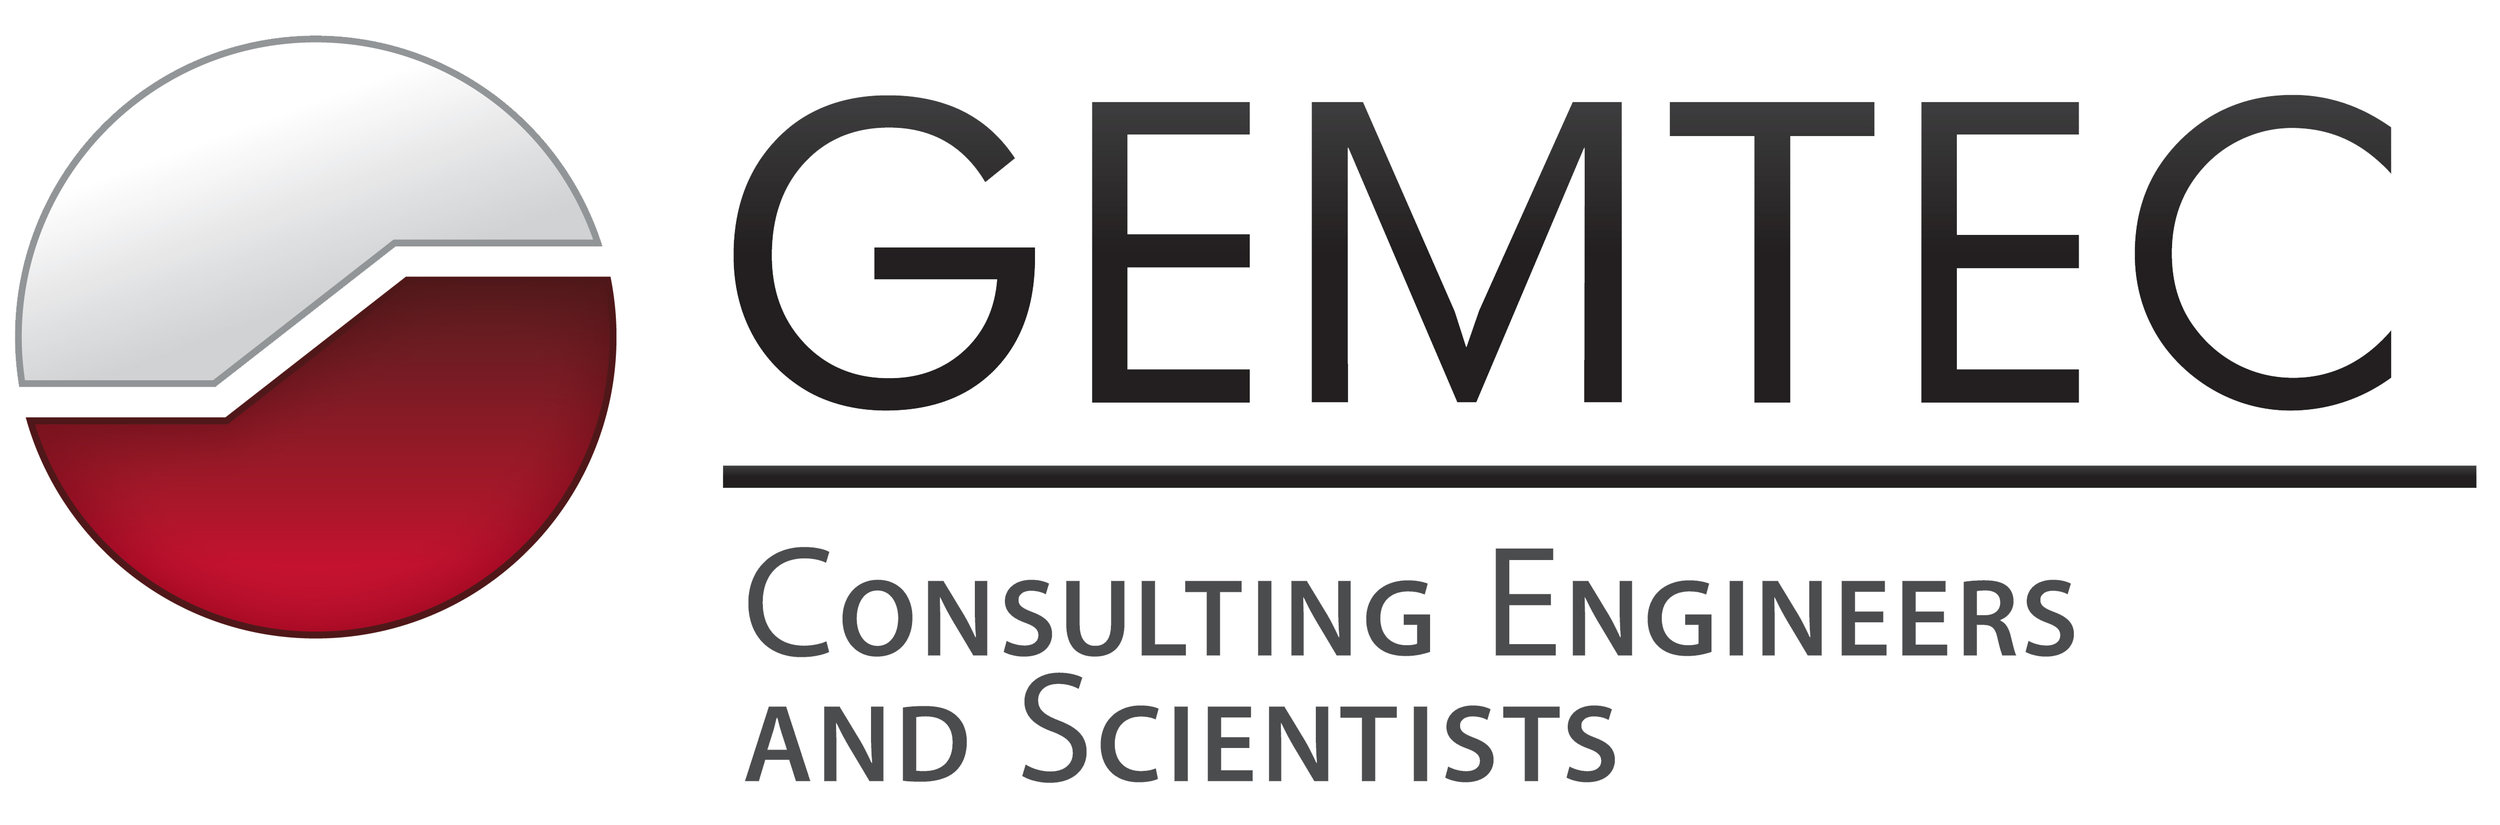 GEMTEC (New Logo 2009 with shading).jpg